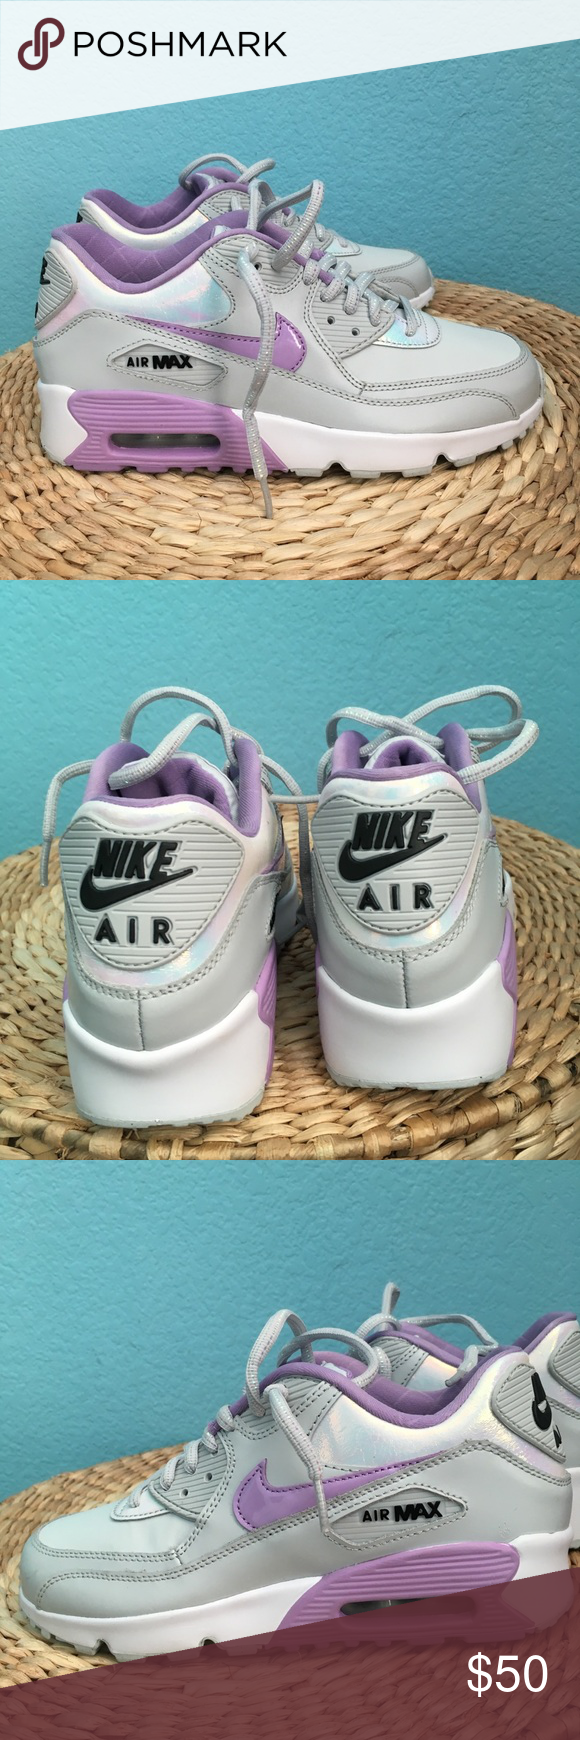 cheap for discount a5a2c 11c3c Nike Air Max 90 SE Leather White, purple, unicorn Reference  859633-002